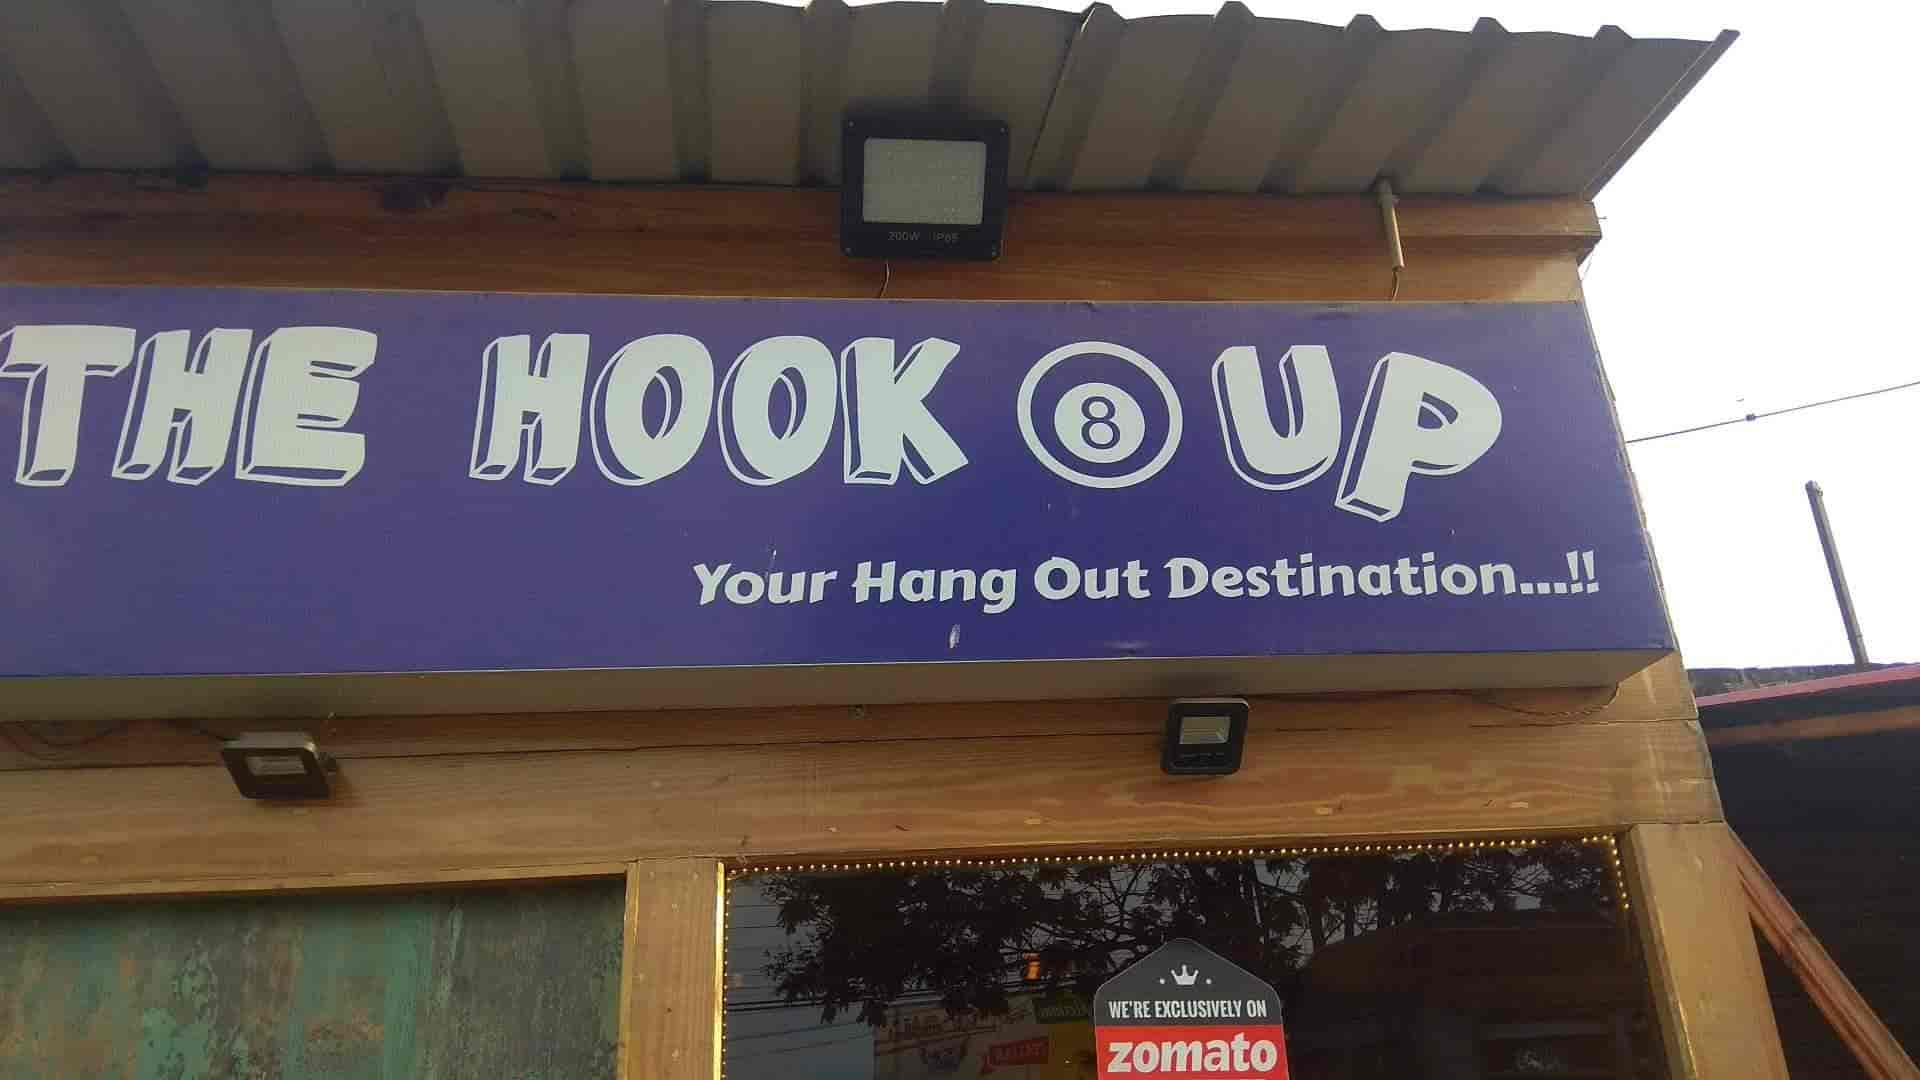 Hook up ratings